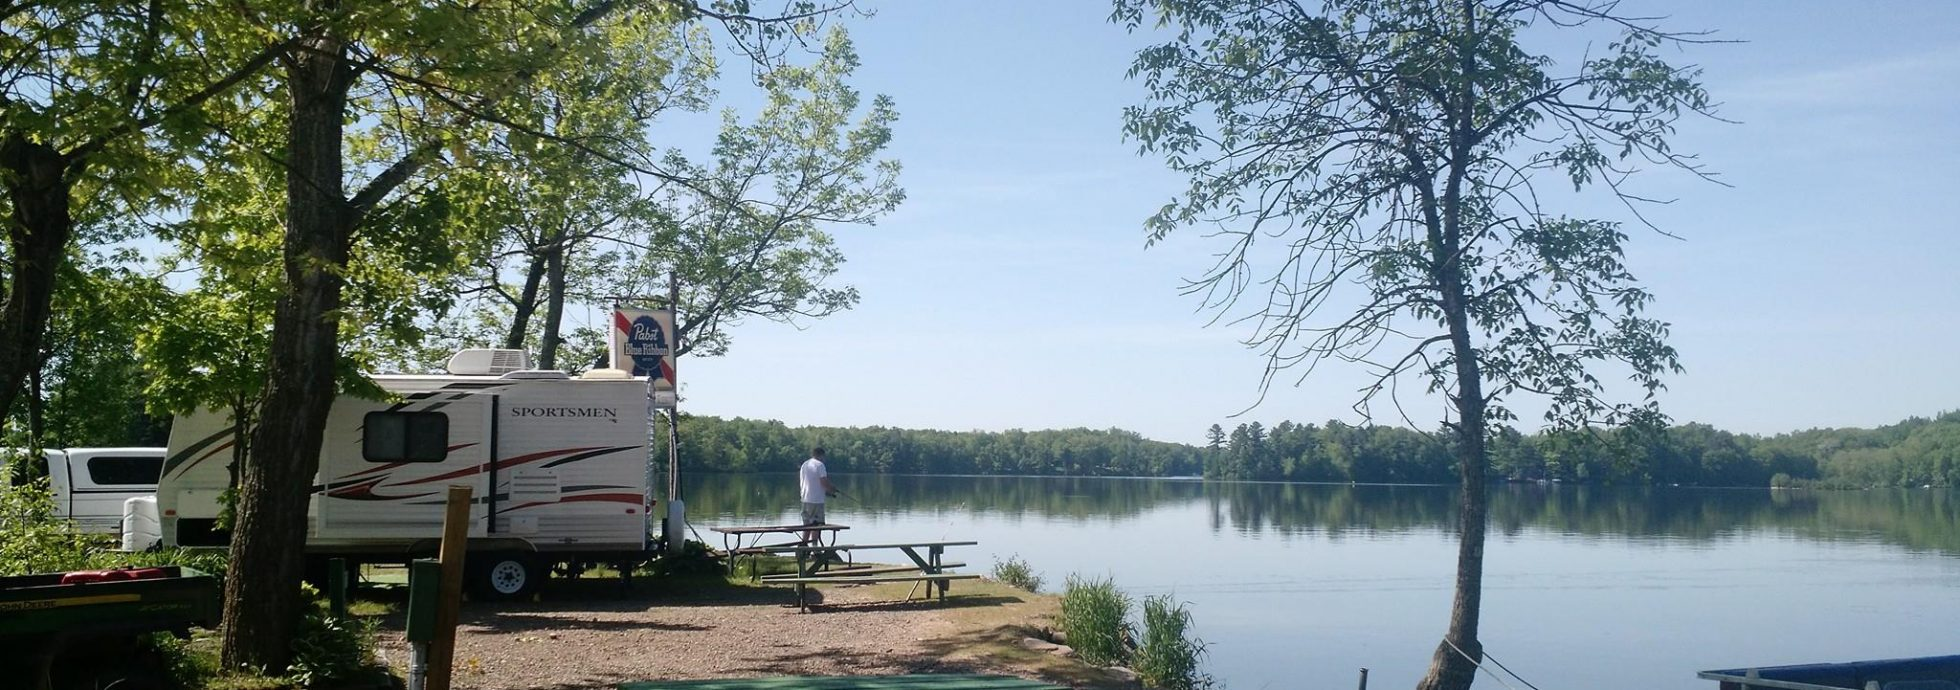 TJ's Timberline Campground in Chetek, WI